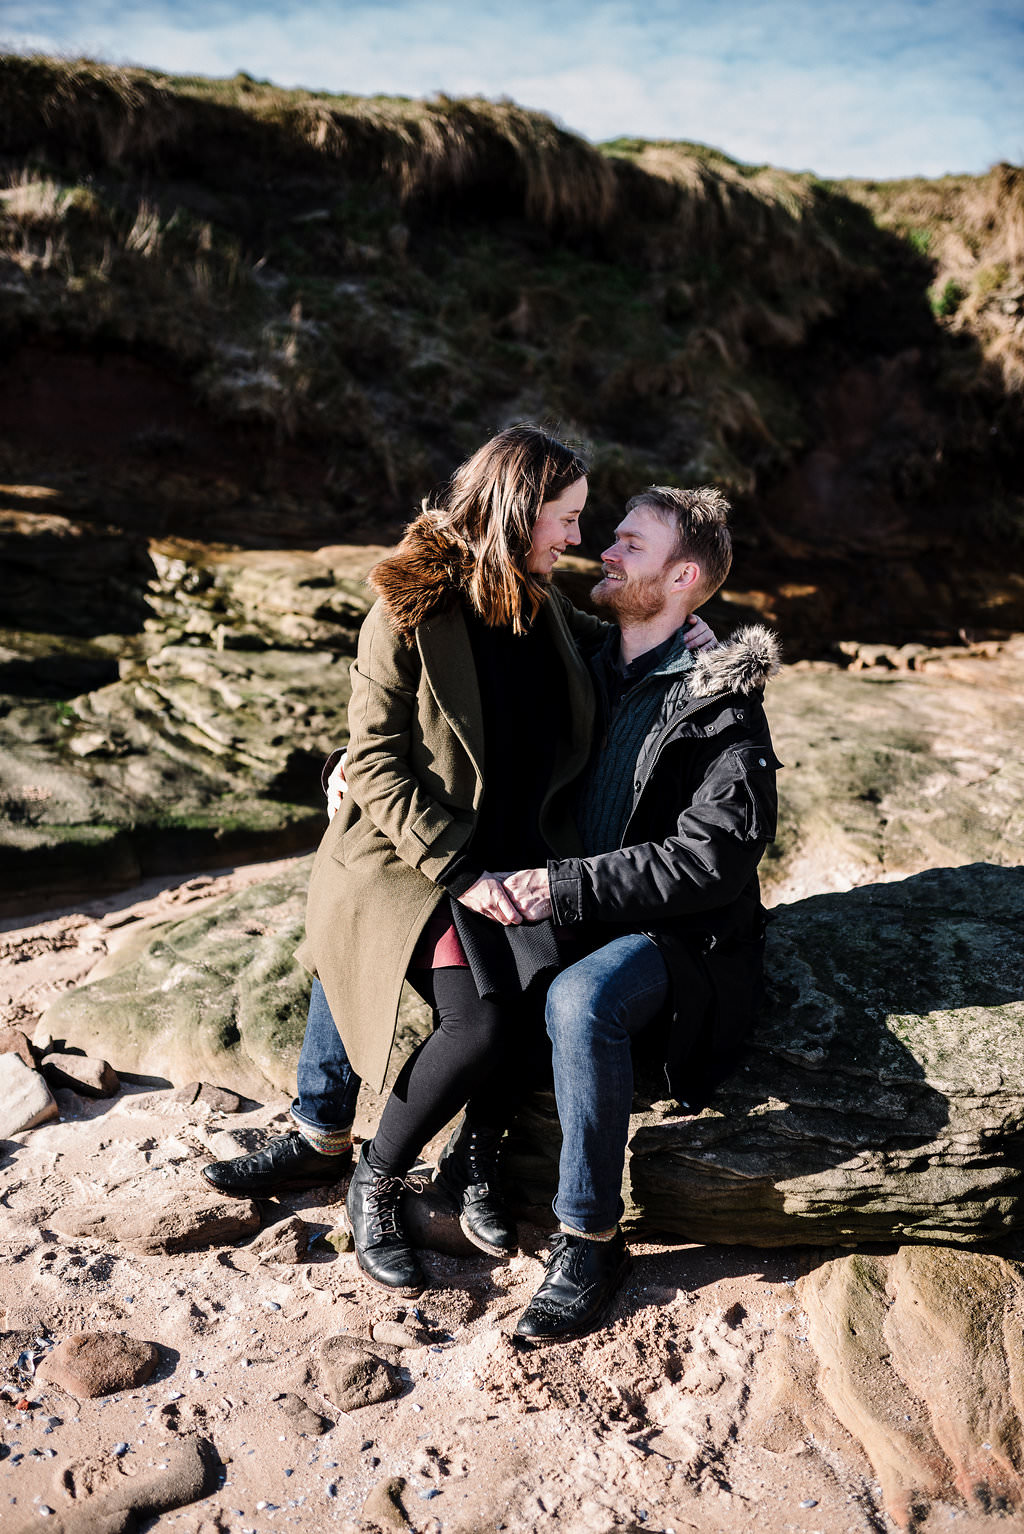 Intimate portrait of couple sat on rocks kissing. Engagement photography